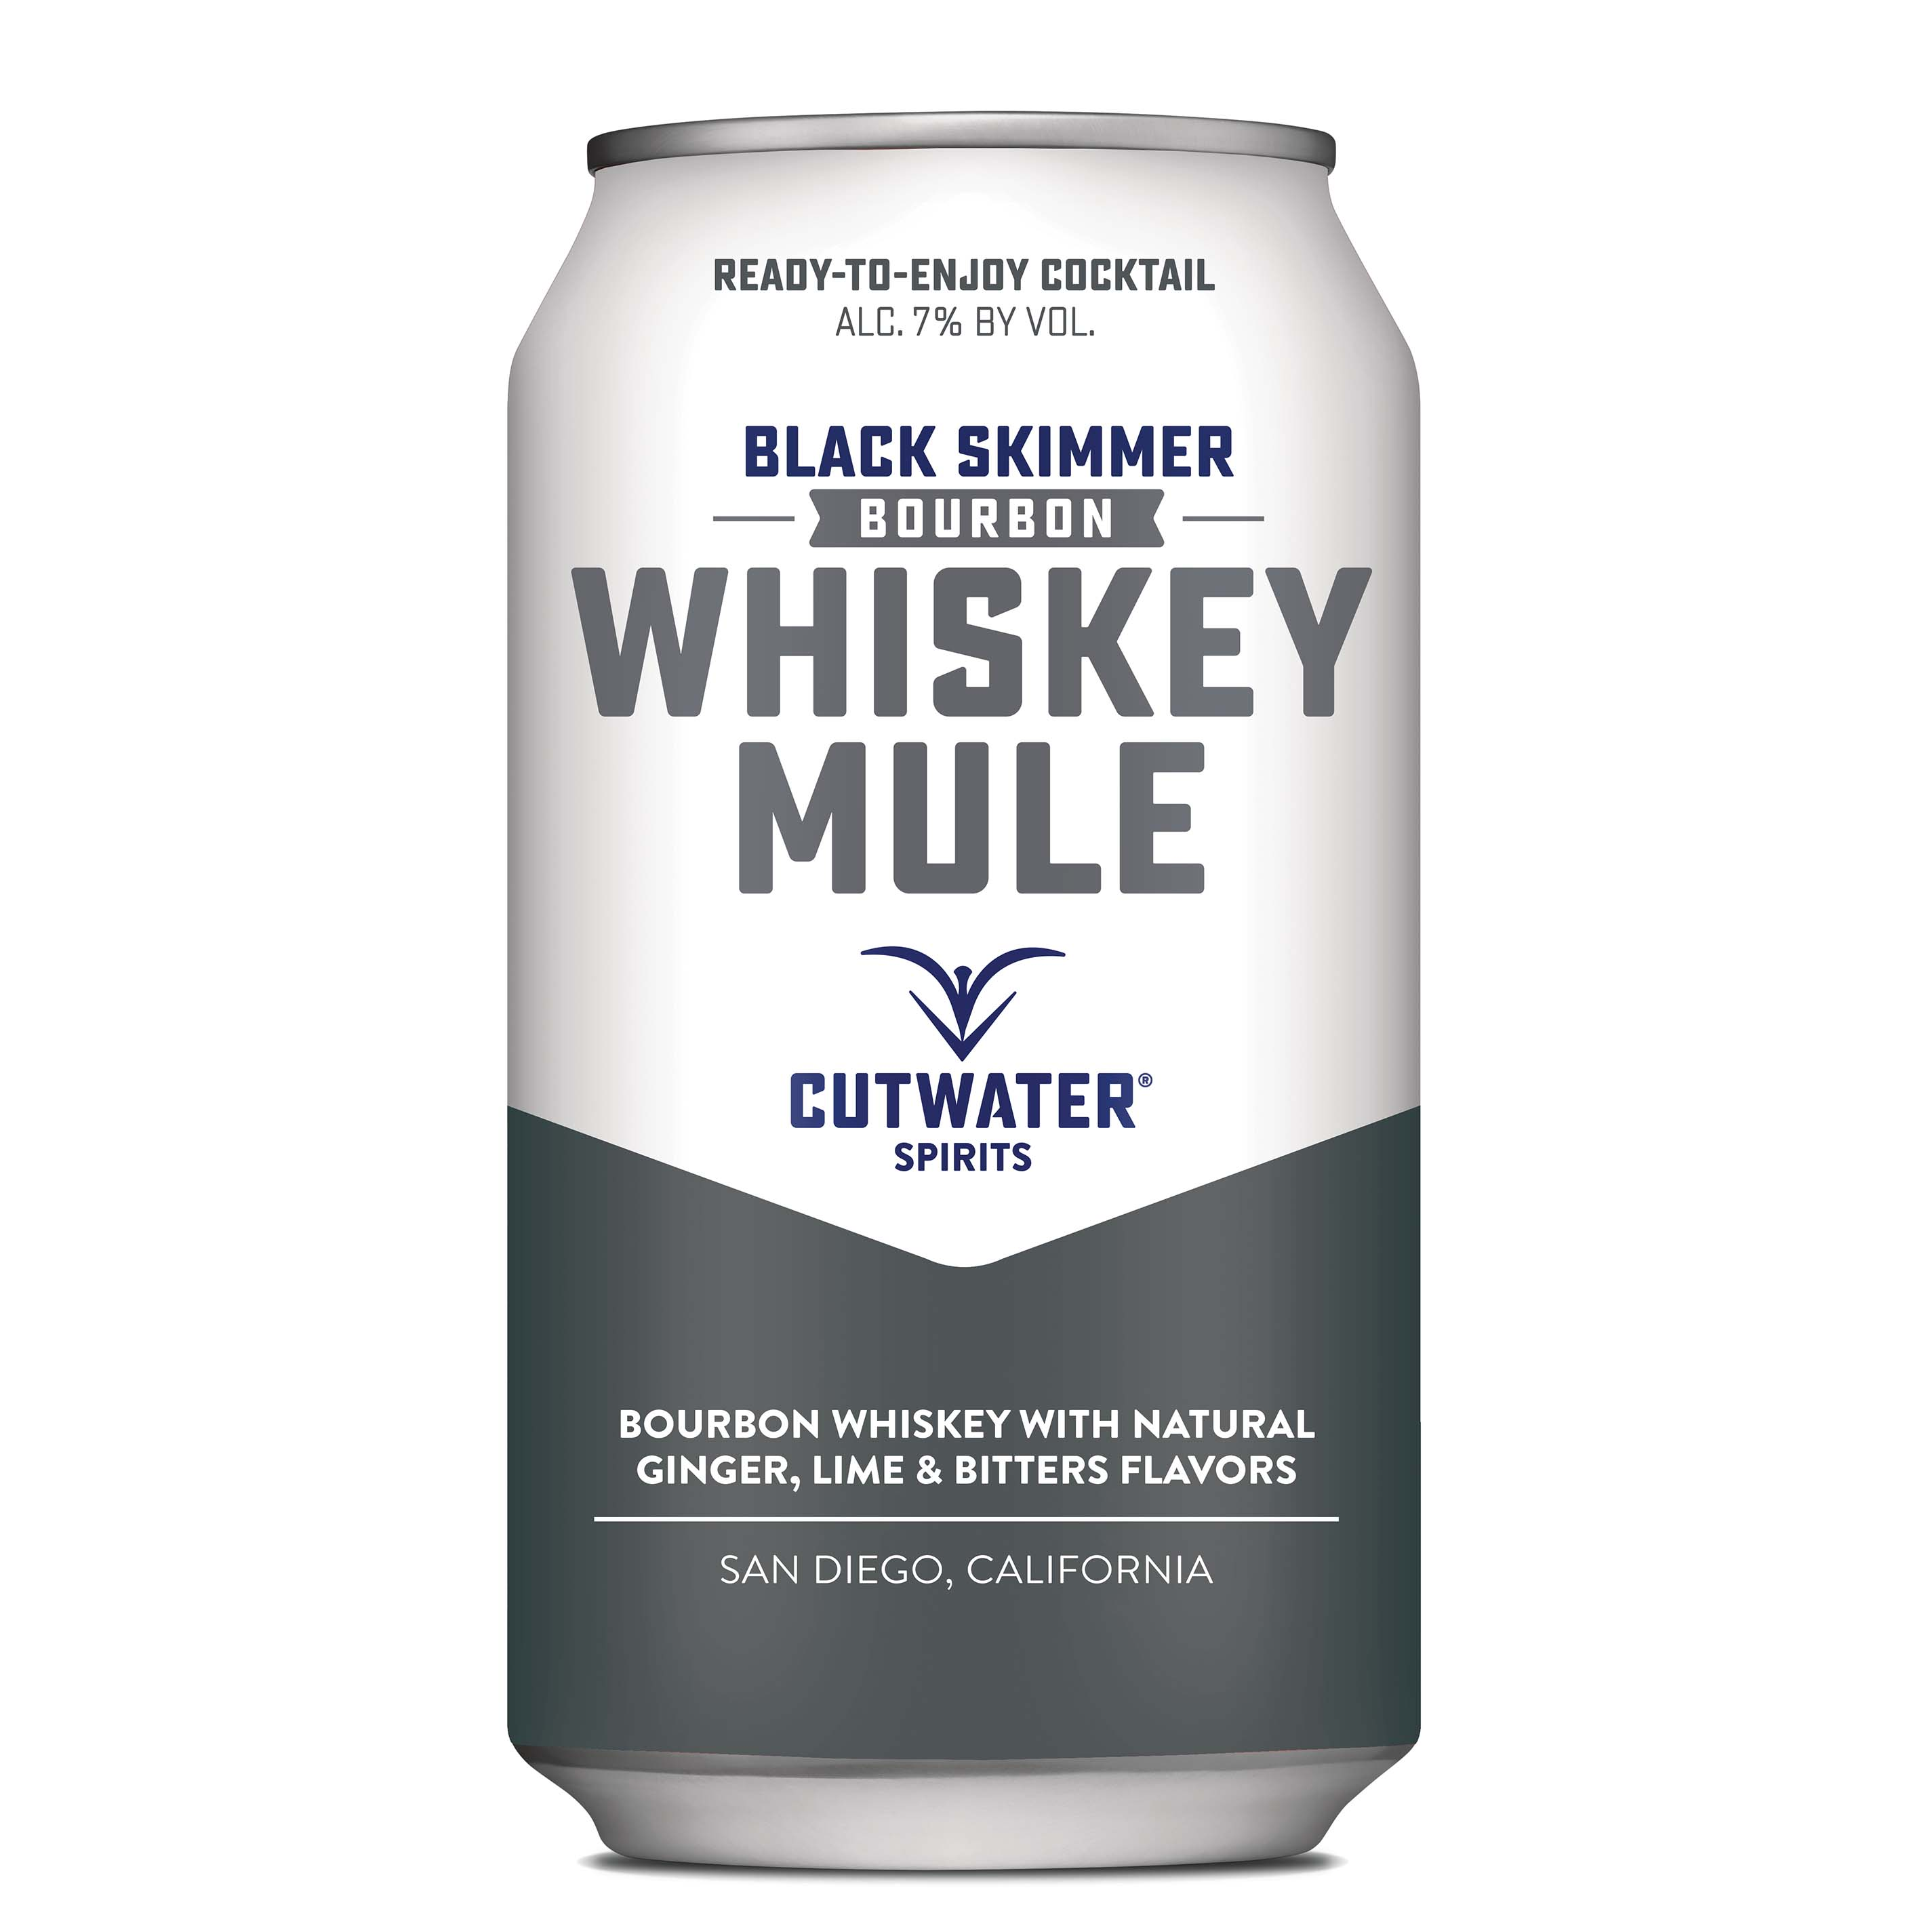 Cutwater, Whiskey Mule